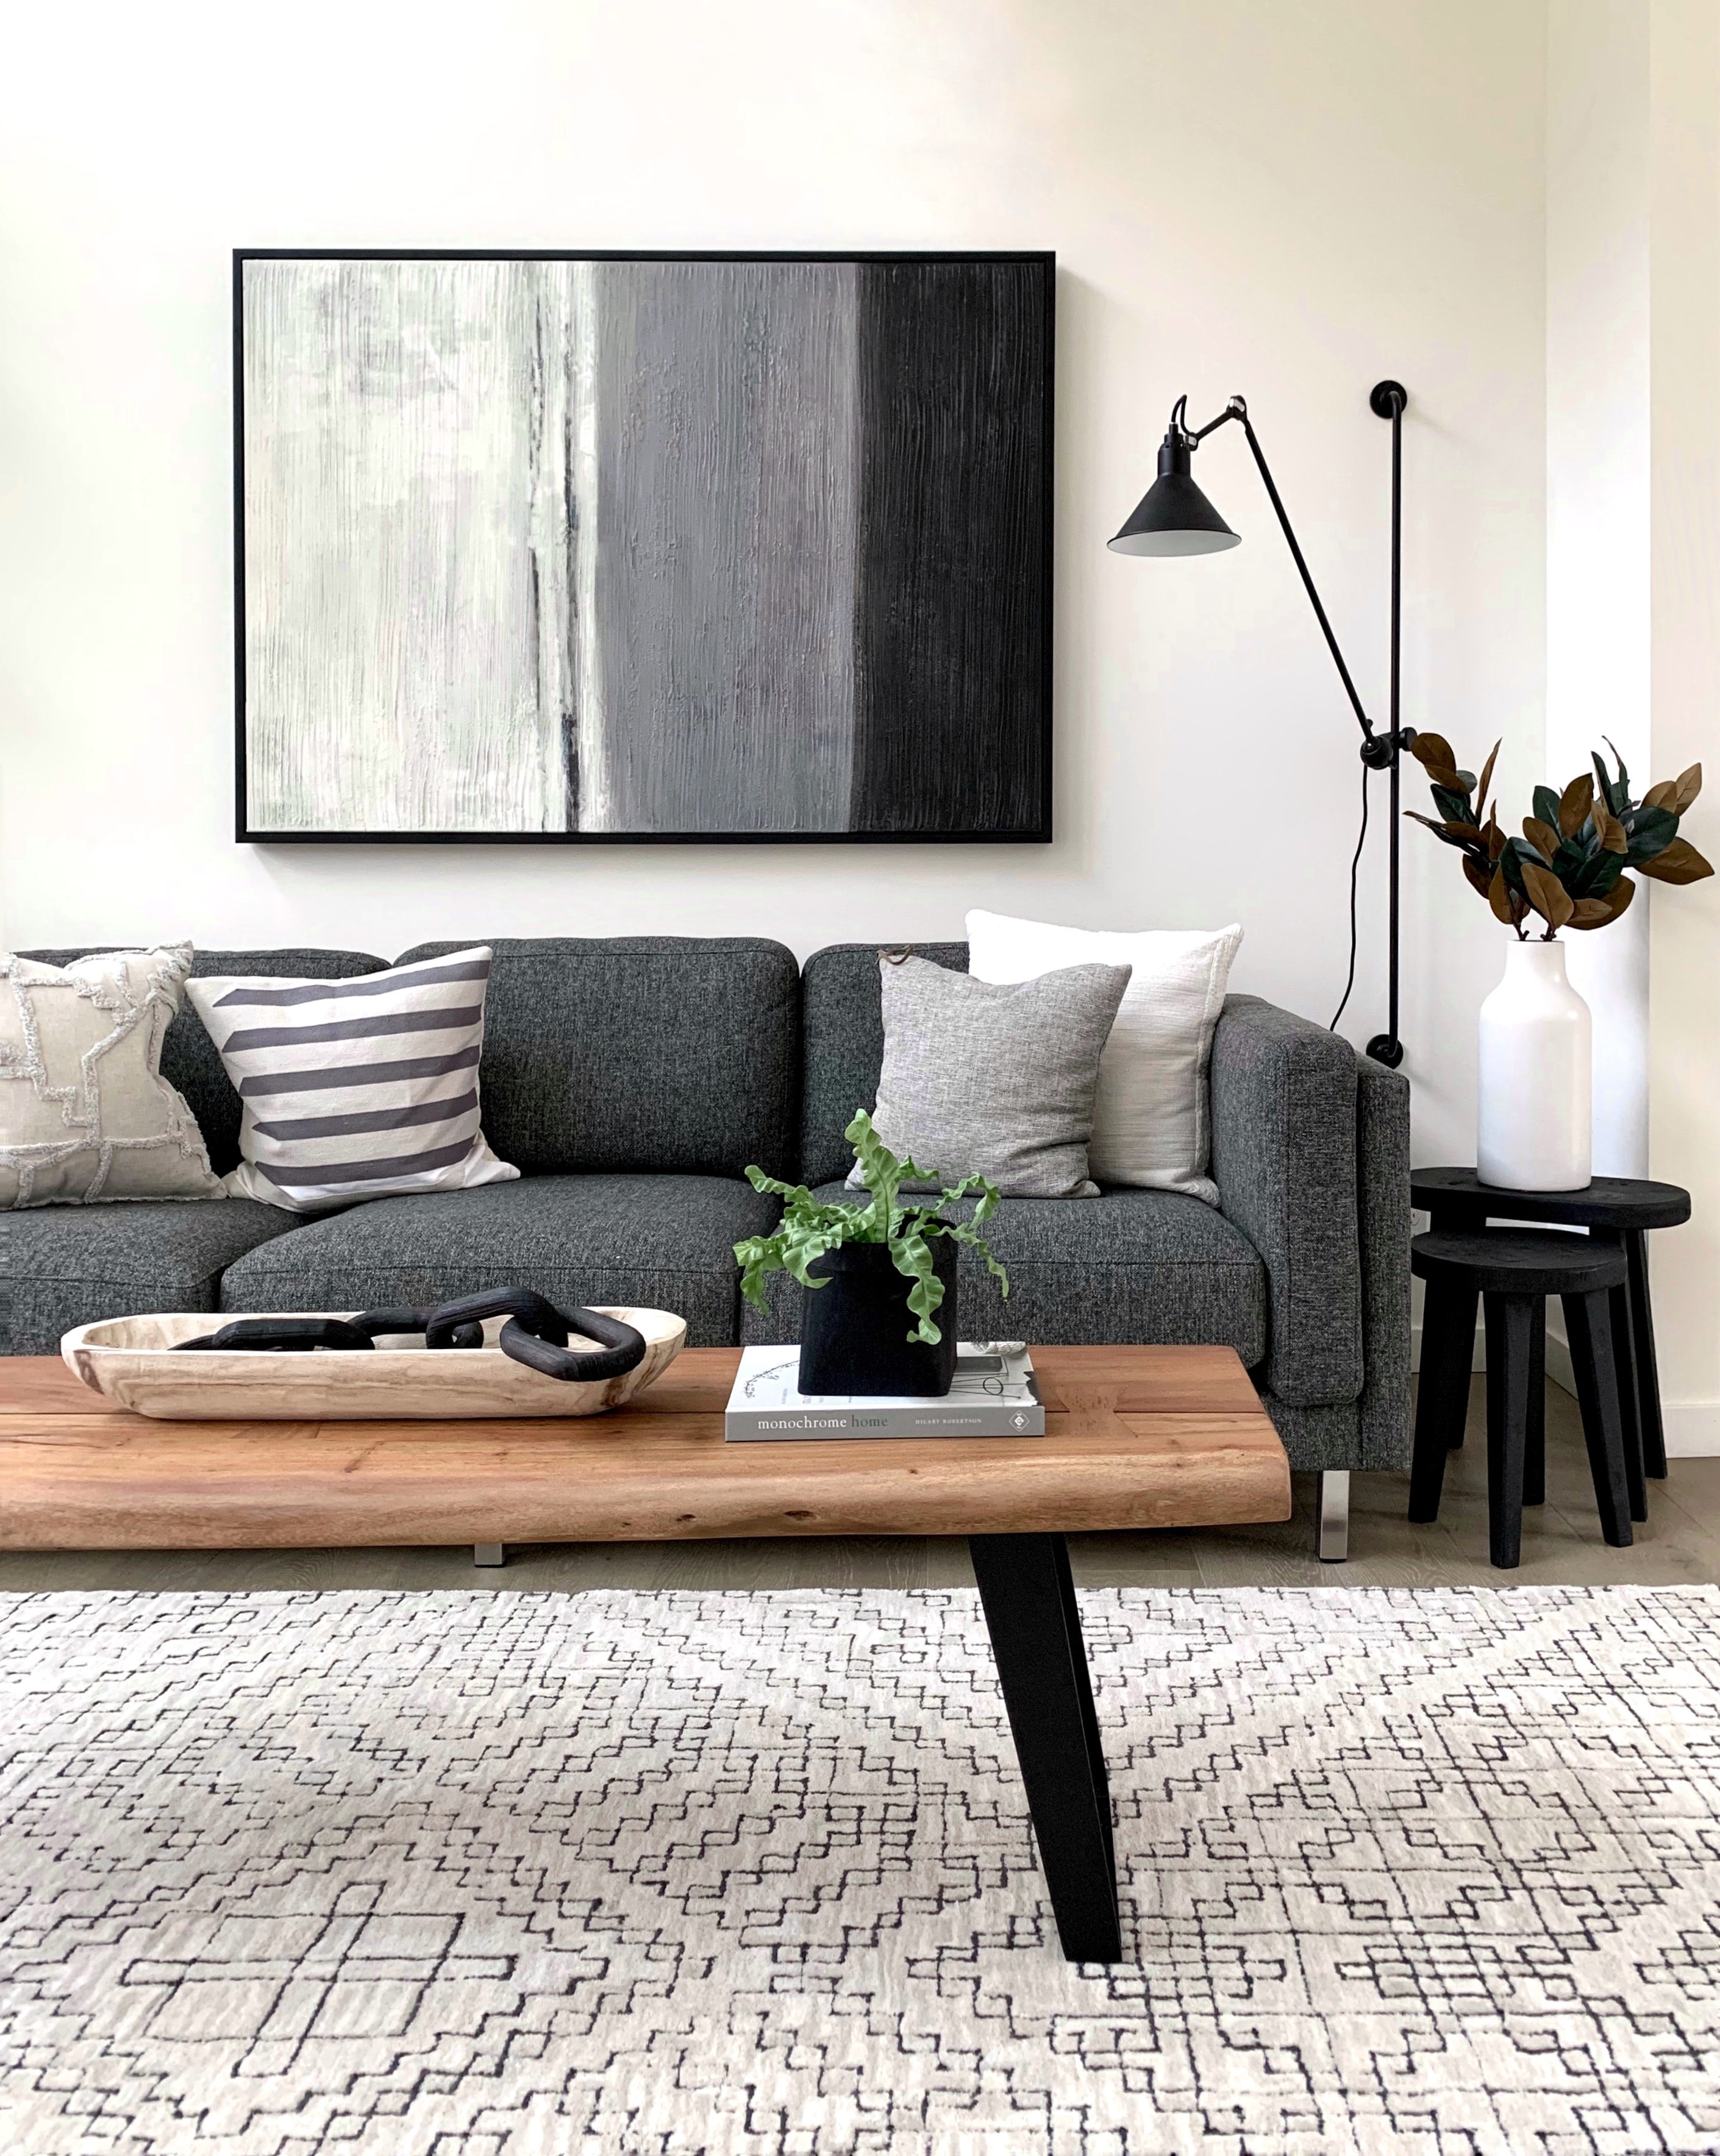 500 Coffee Table Pictures Download Free Images On Unsplash